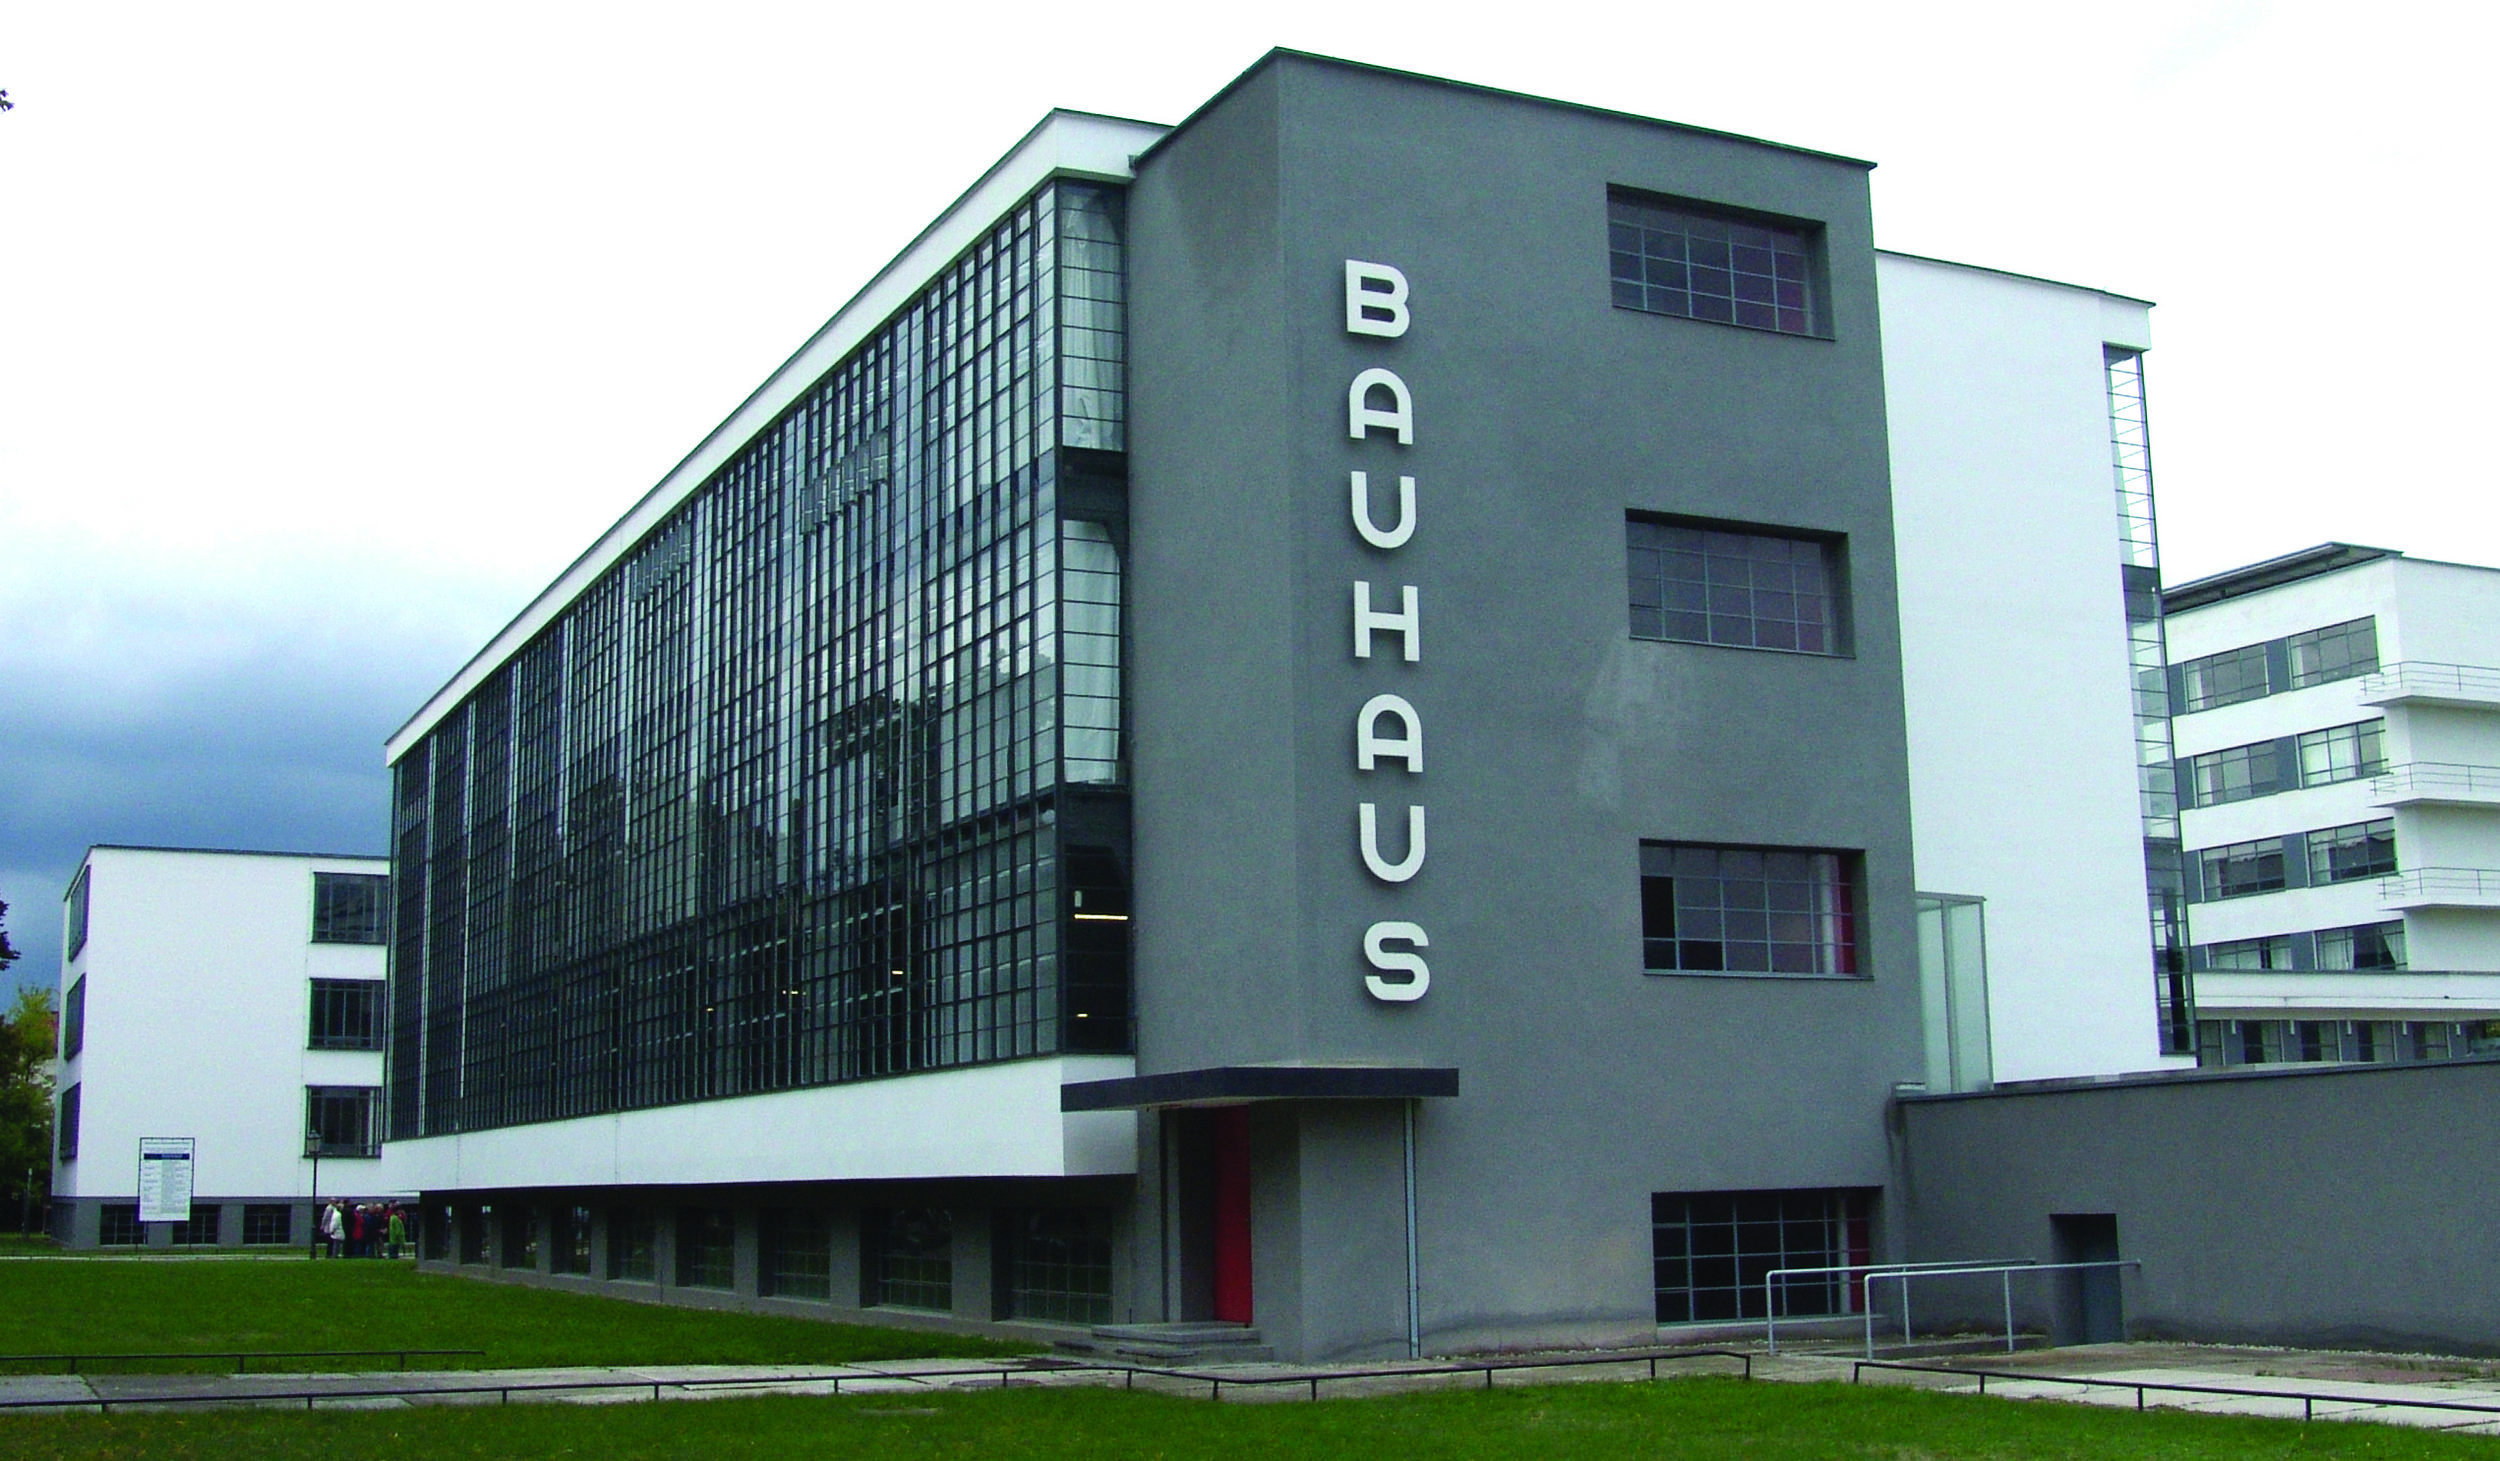 The Bauhaus Building in Dessau, Germany; image taken in 2003.Image courtesy of Mewes.